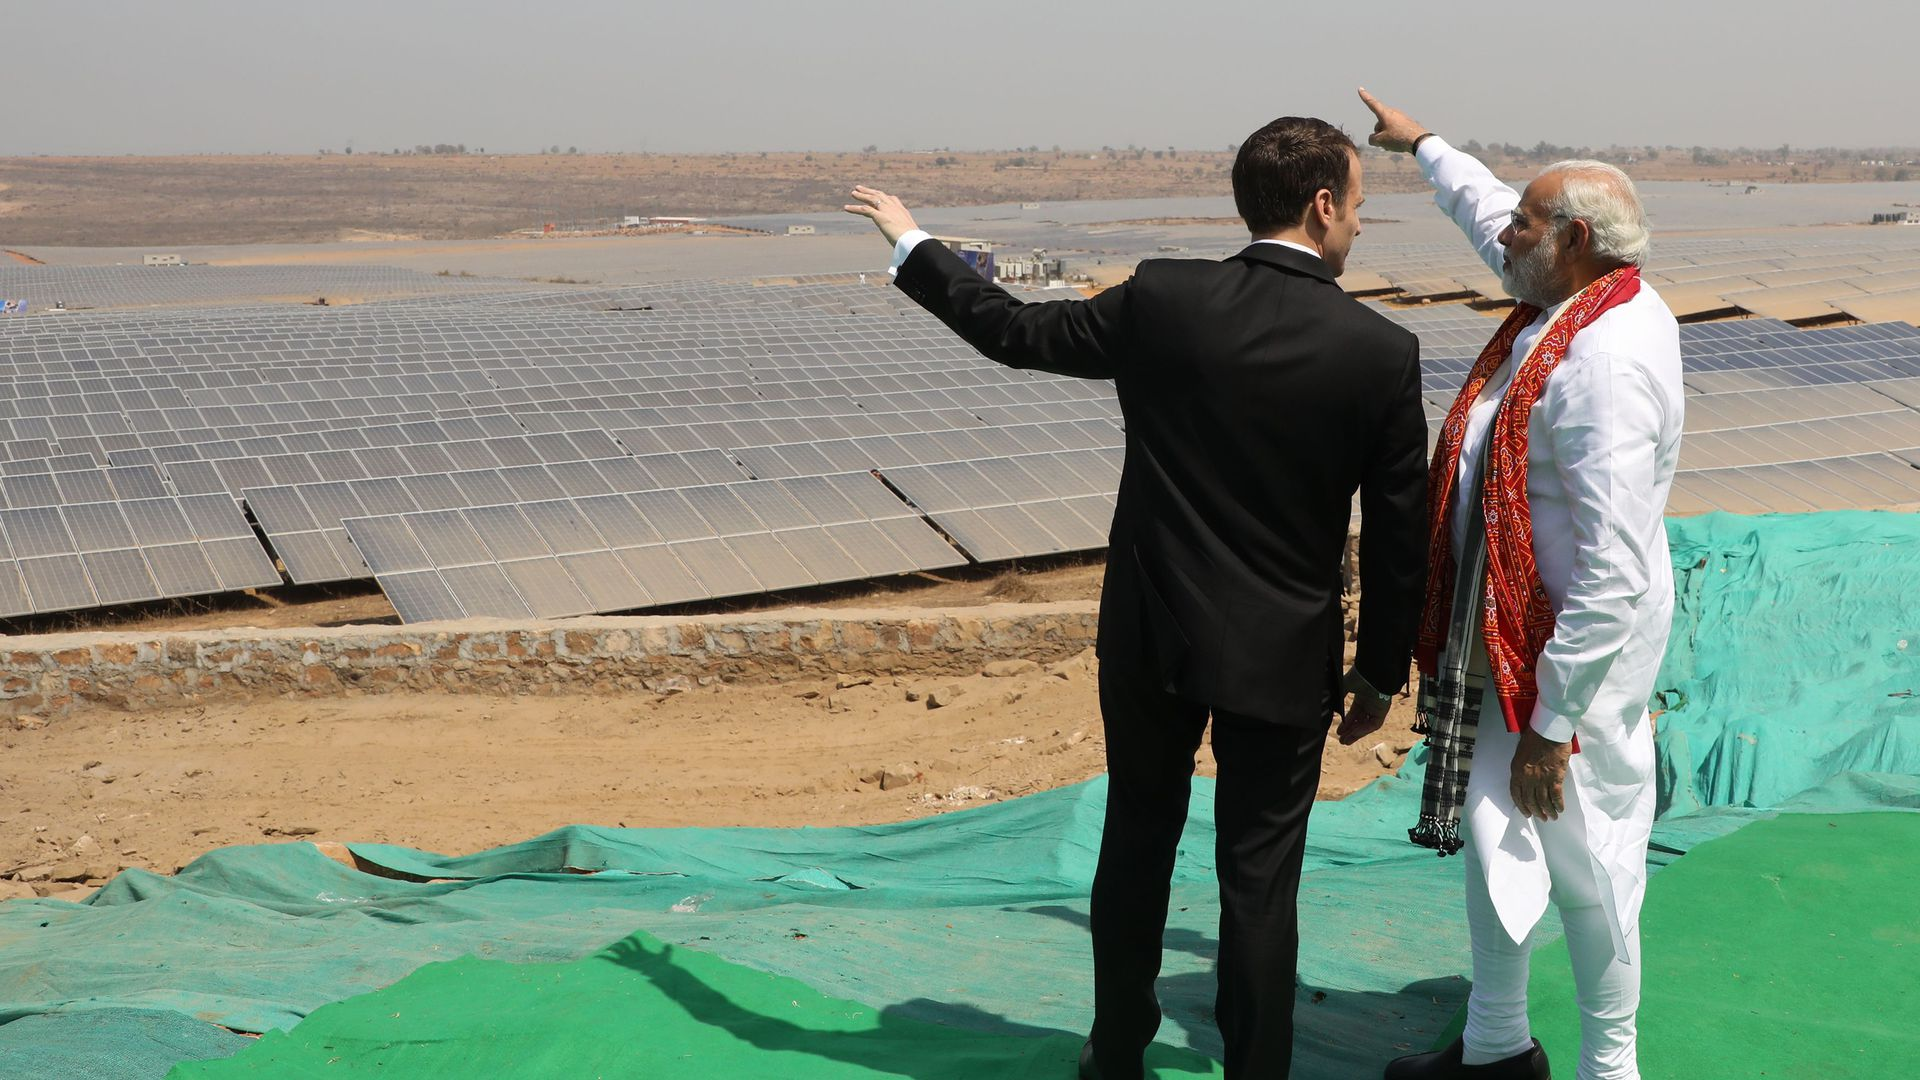 Indian Prime Minister Narendra Modi and French President Emmanuel Macron stand together during the inauguration of a solar power plant in Mirzapur in Uttar Pradesh state on March 12, 2018.